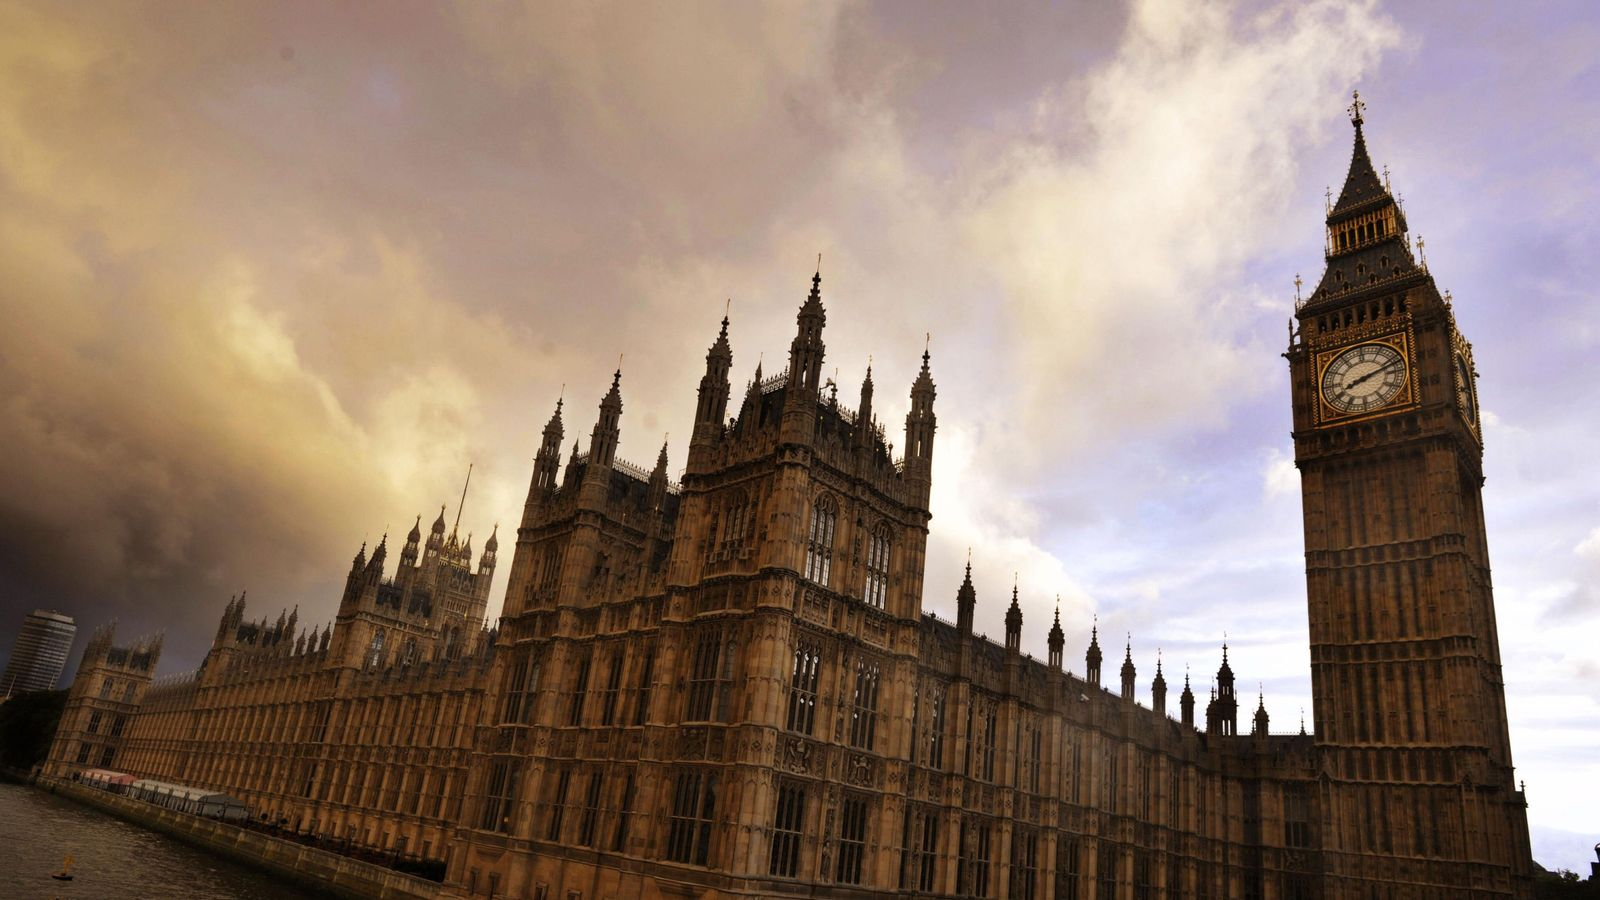 no bongs for big ben until 2021